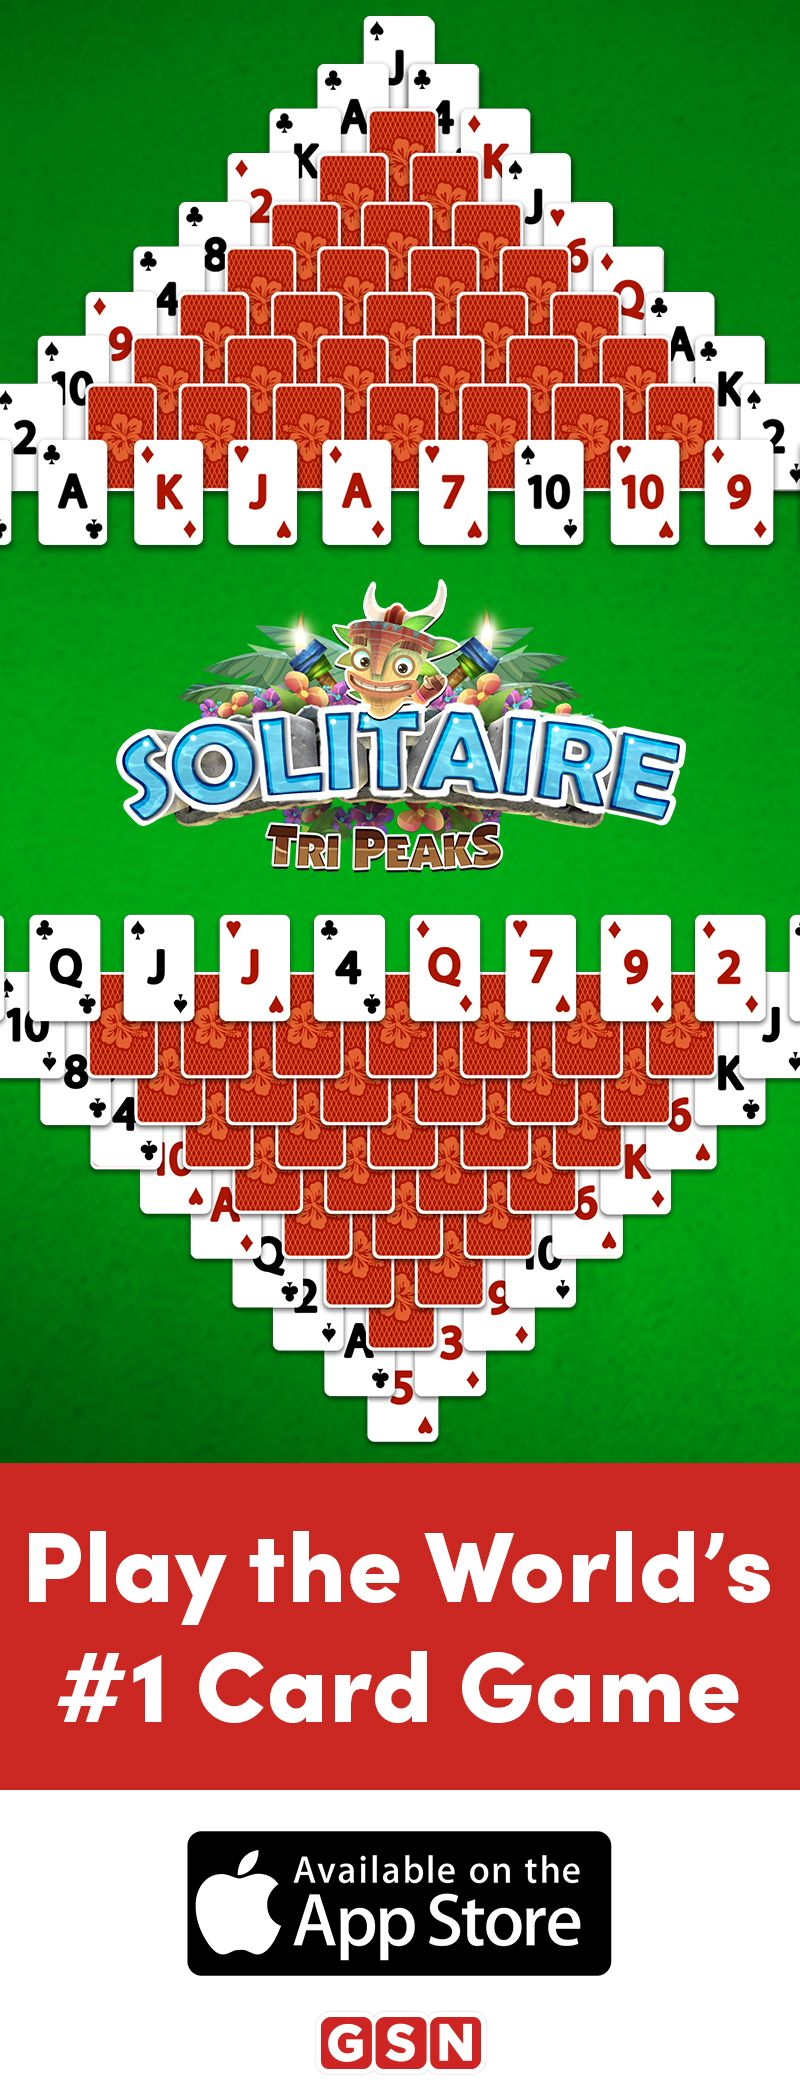 Play the hottest solitaire game around and download